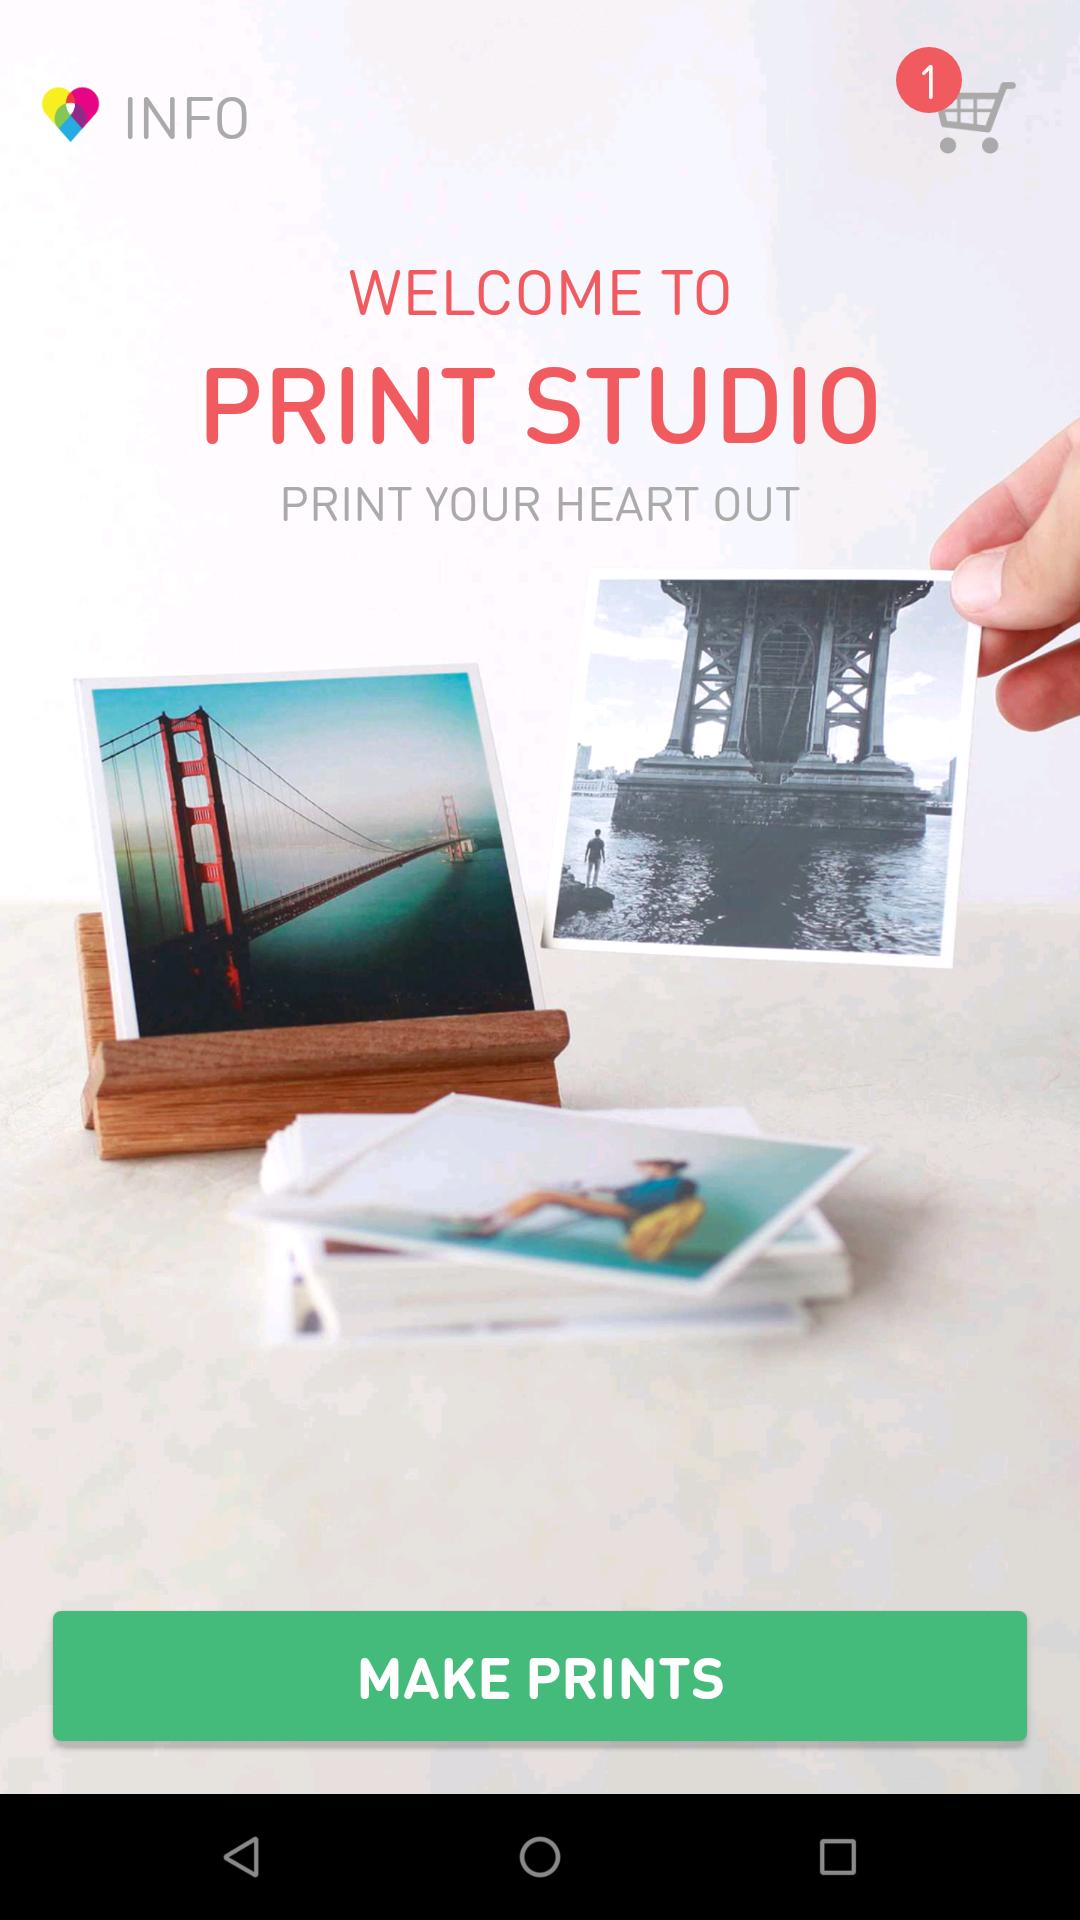 Print Studio for Android - APK Download